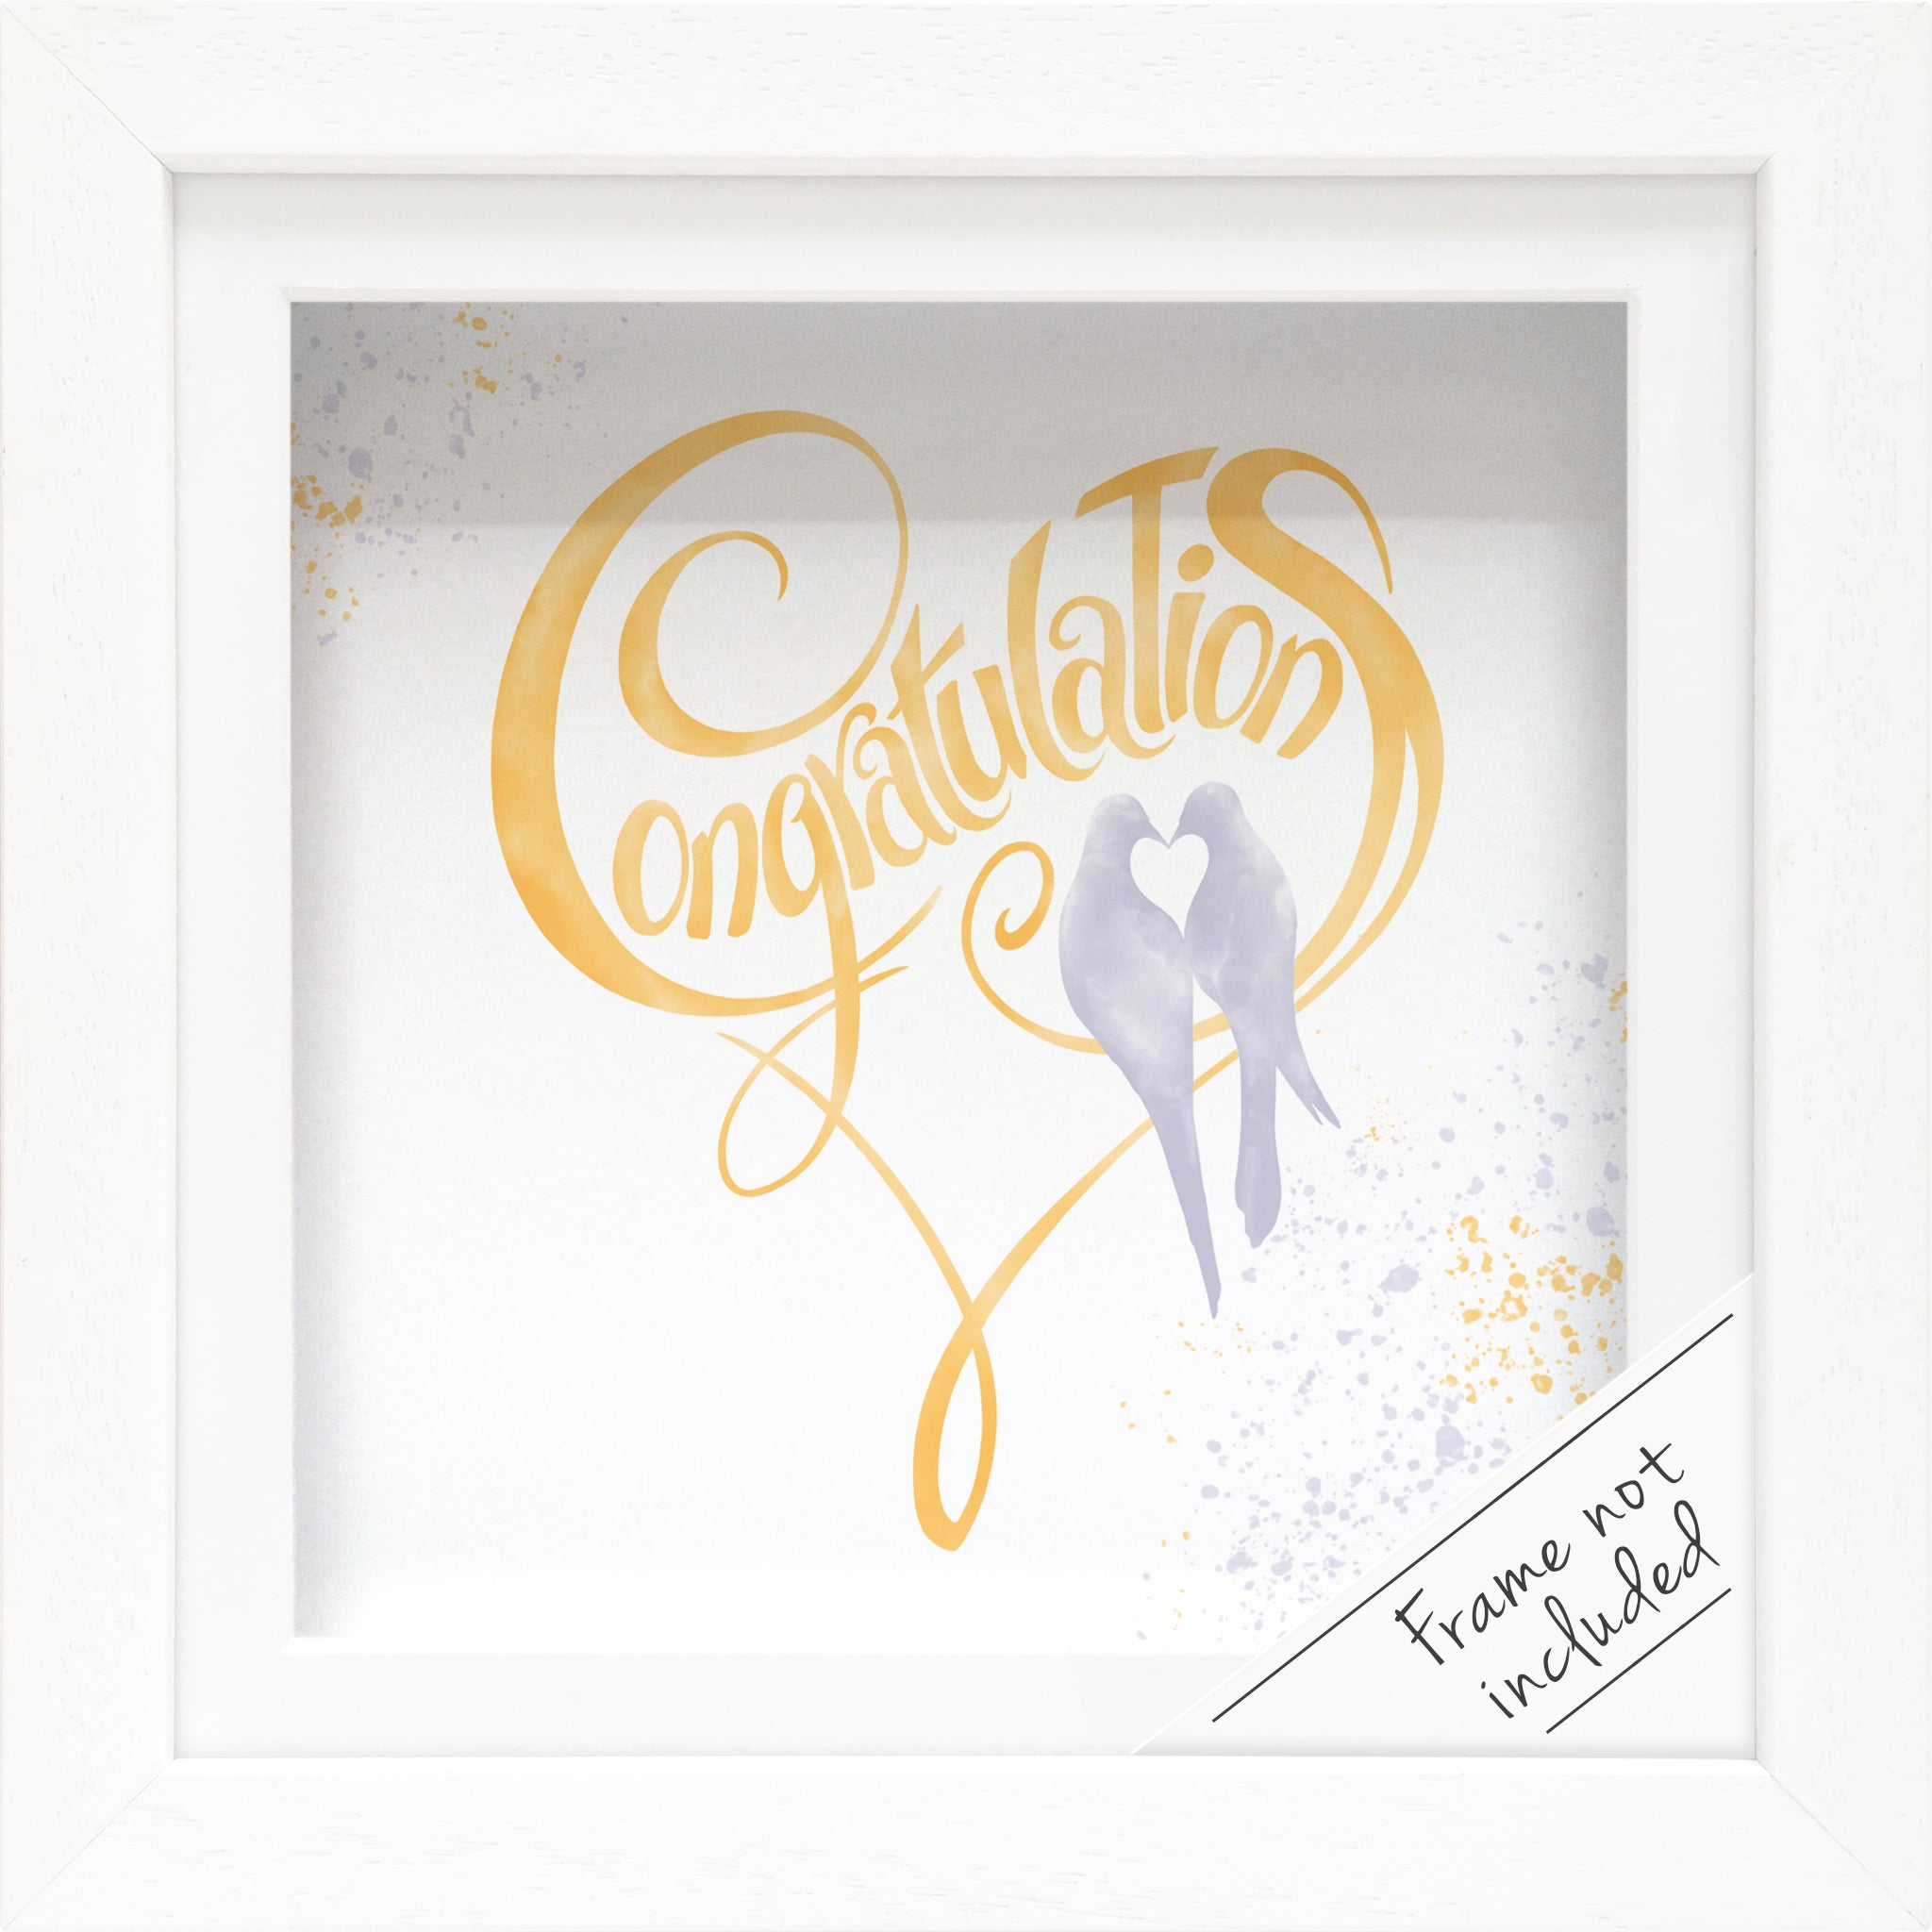 Congratulation Doves: Print